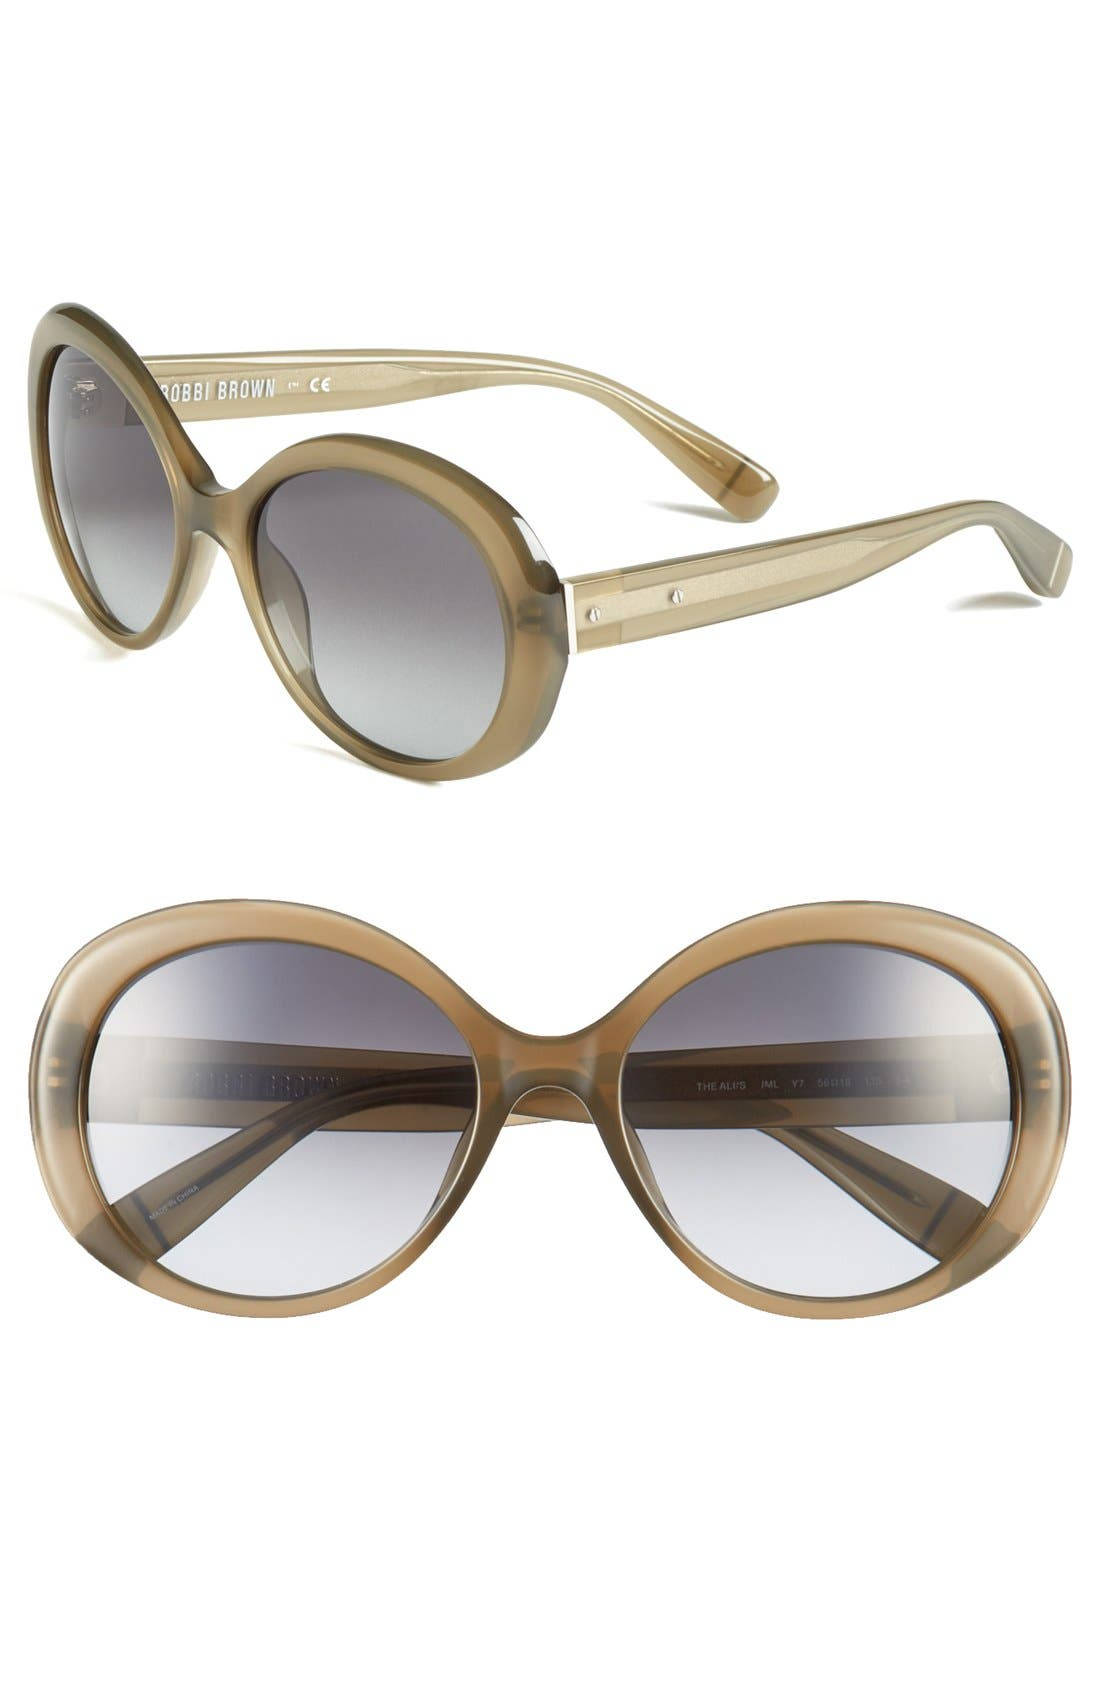 Main Image - Bobbi Brown 'The Ali' 56mm Sunglasses